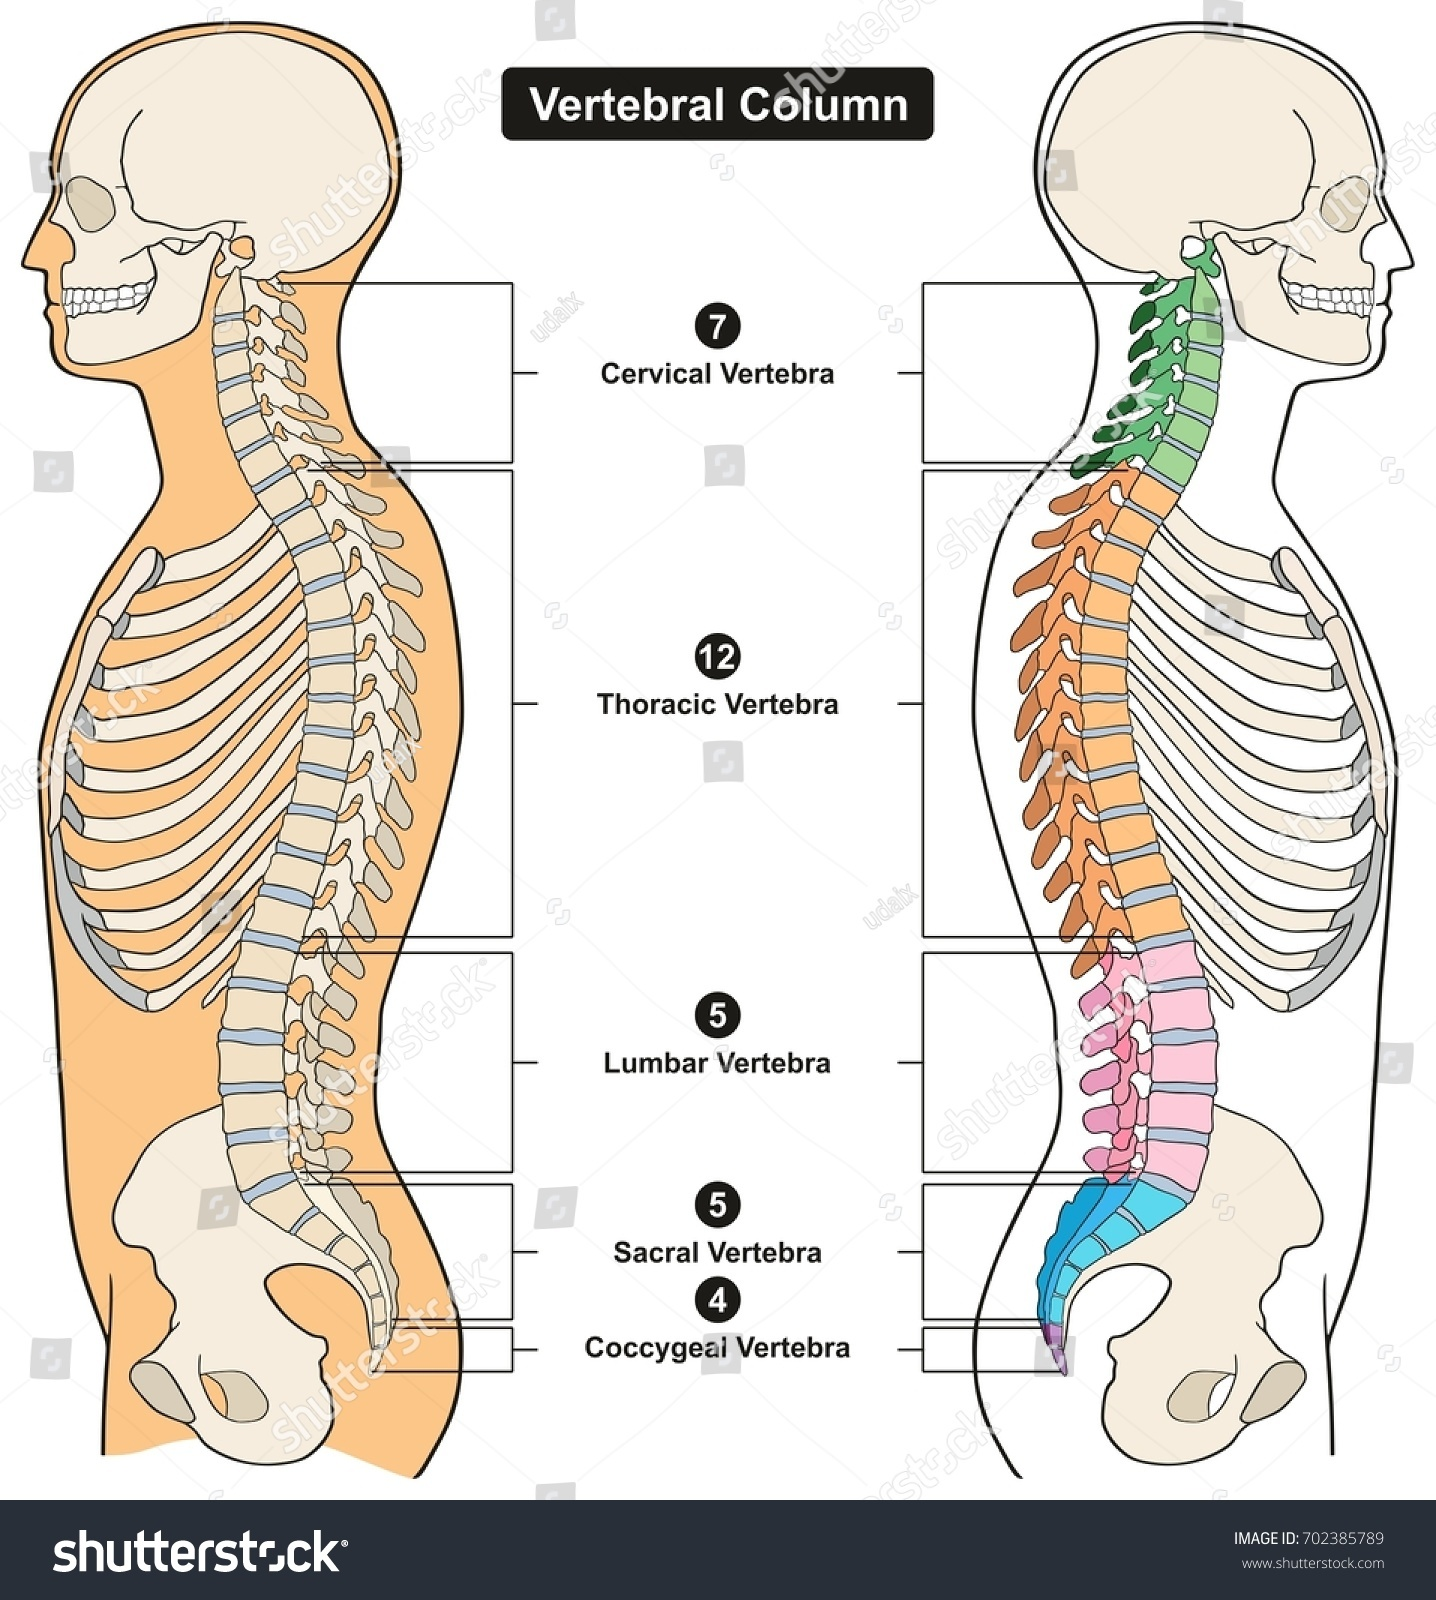 Vertebral Column Human Body Anatomy Infograpic Stock Illustration ...